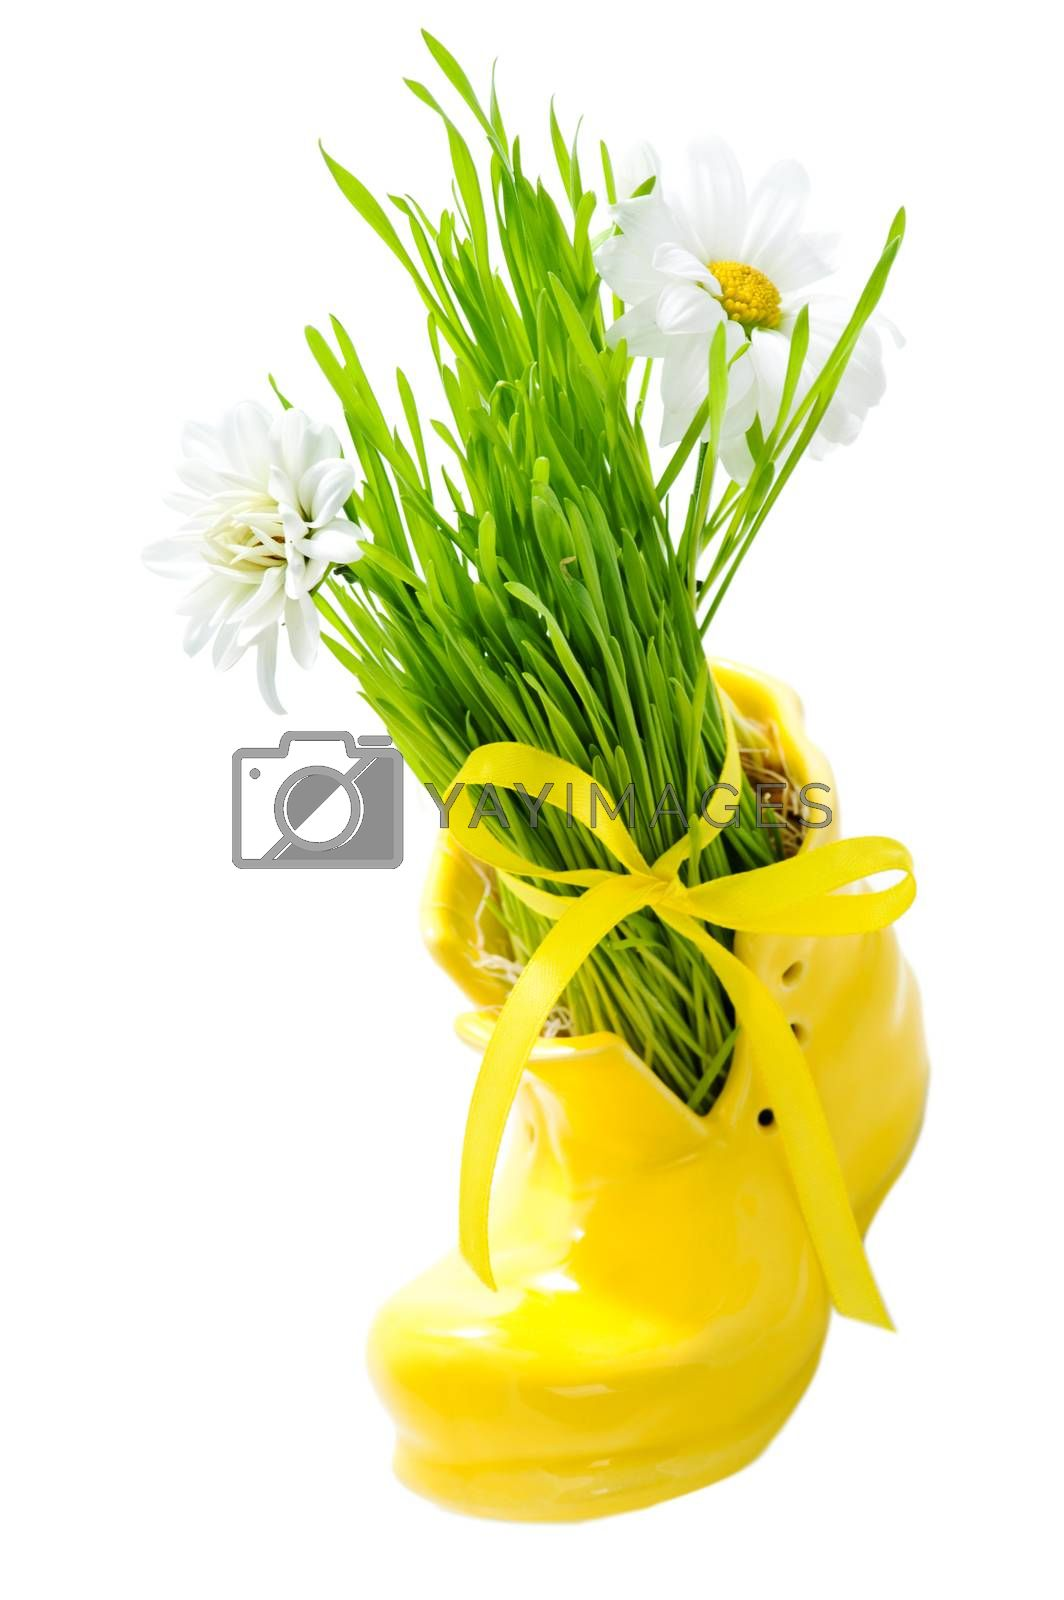 Green grass in a yellow shoe tied with a ribbon isolated on white